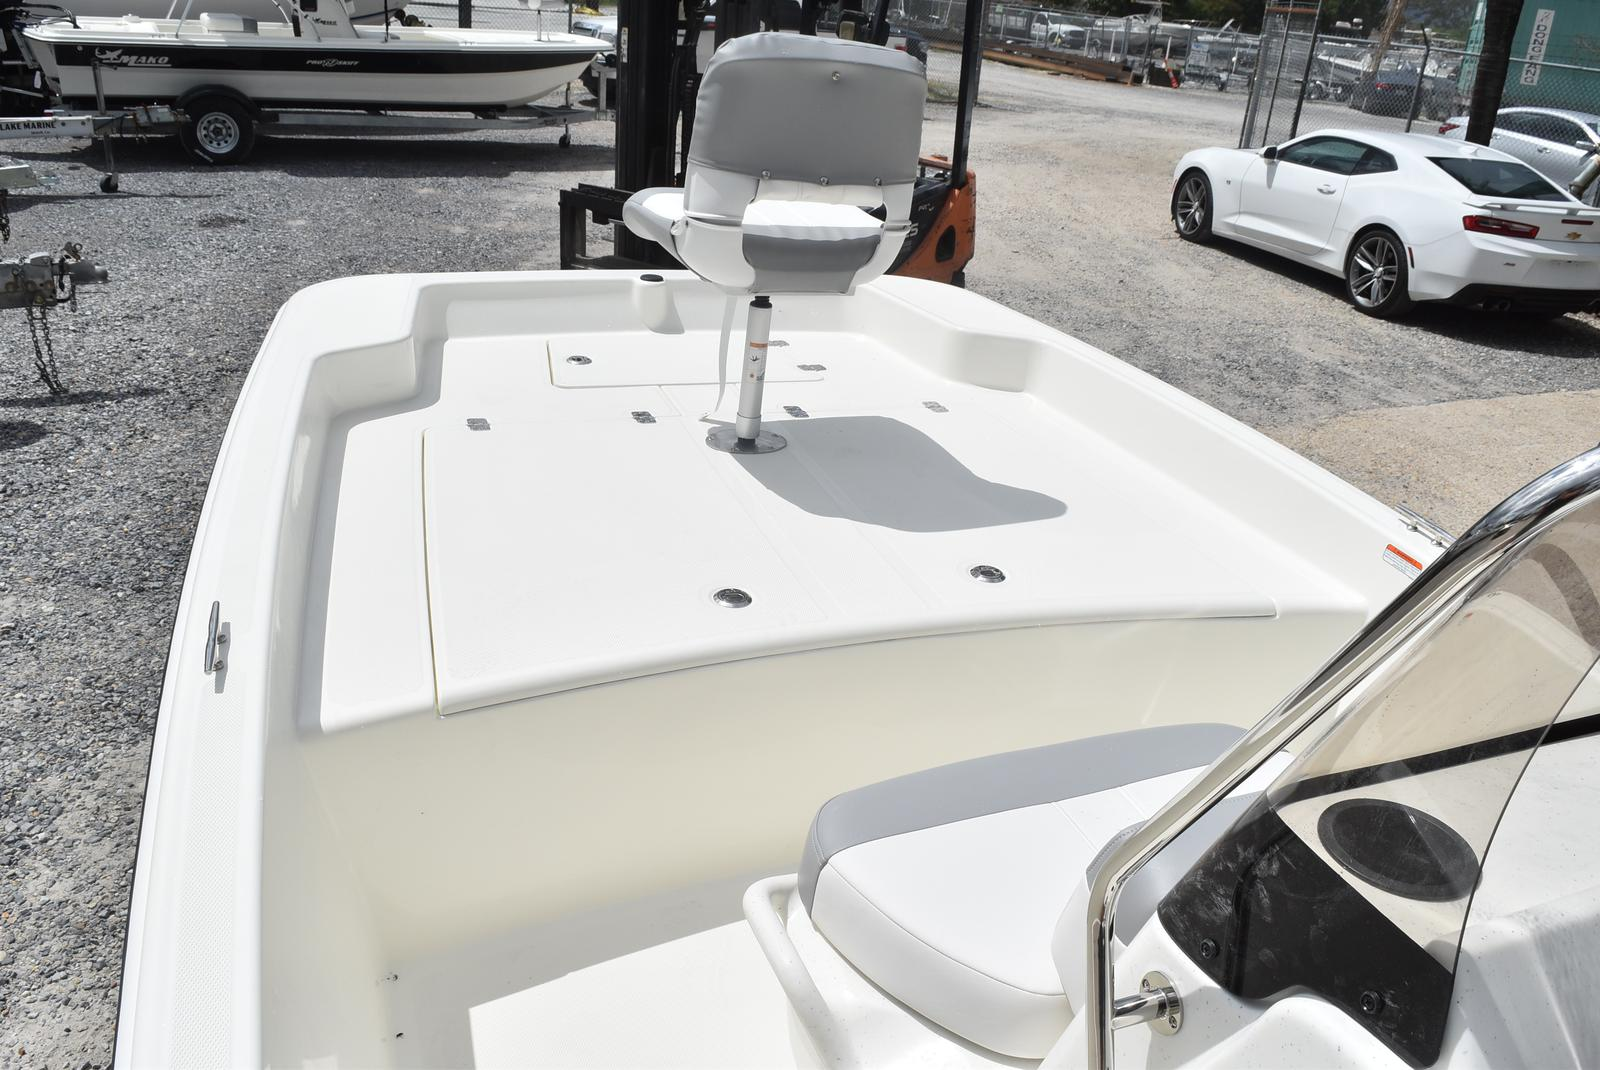 2020 Mako boat for sale, model of the boat is Pro Skiff 17, 75 ELPT & Image # 450 of 702